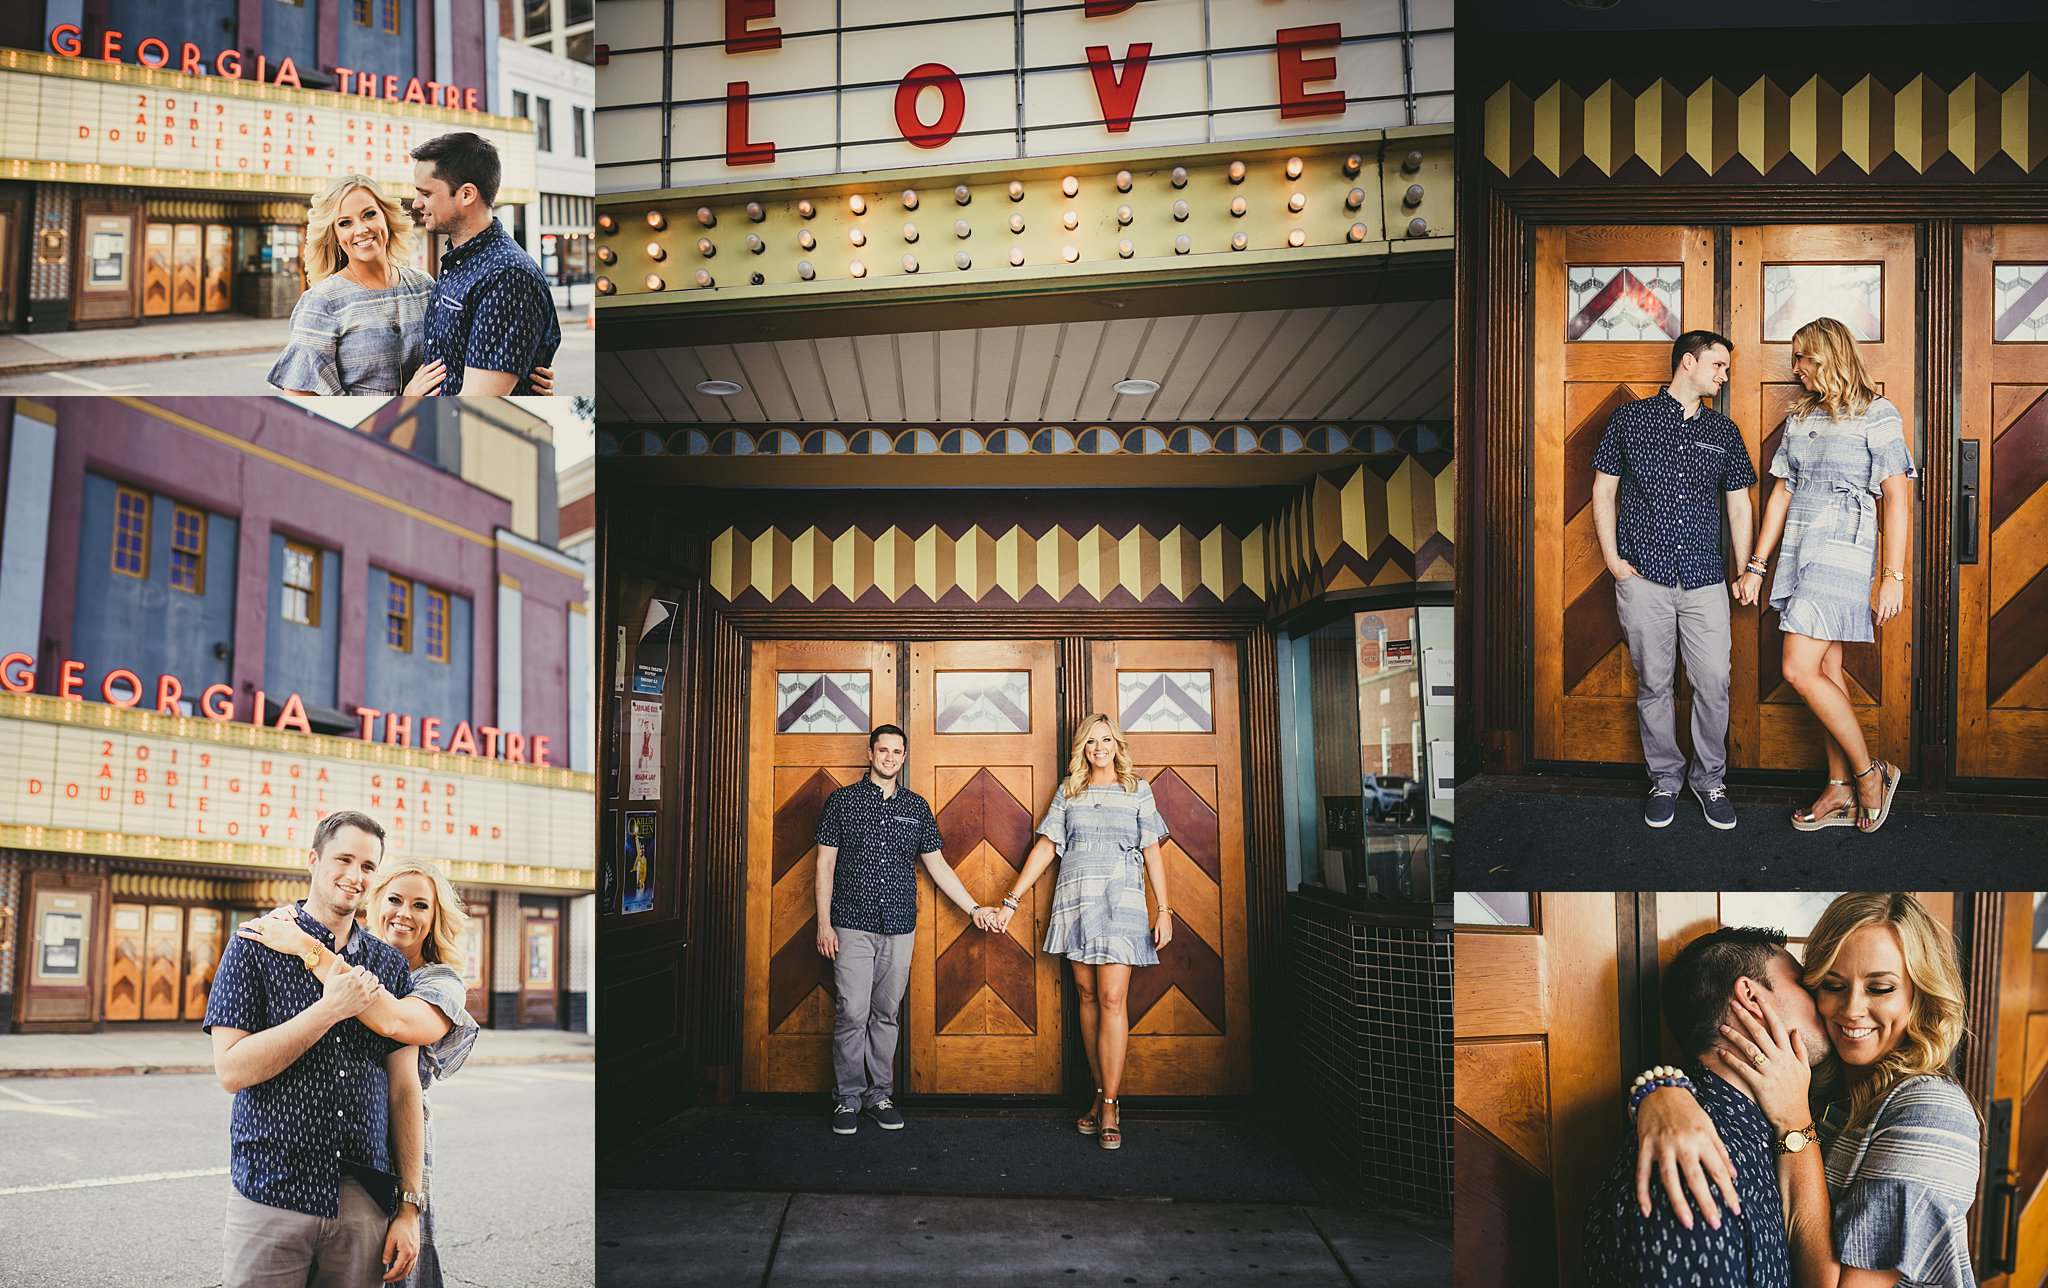 AtlantaWeddingPhotographers Athens Engagement Session Georgia Theater